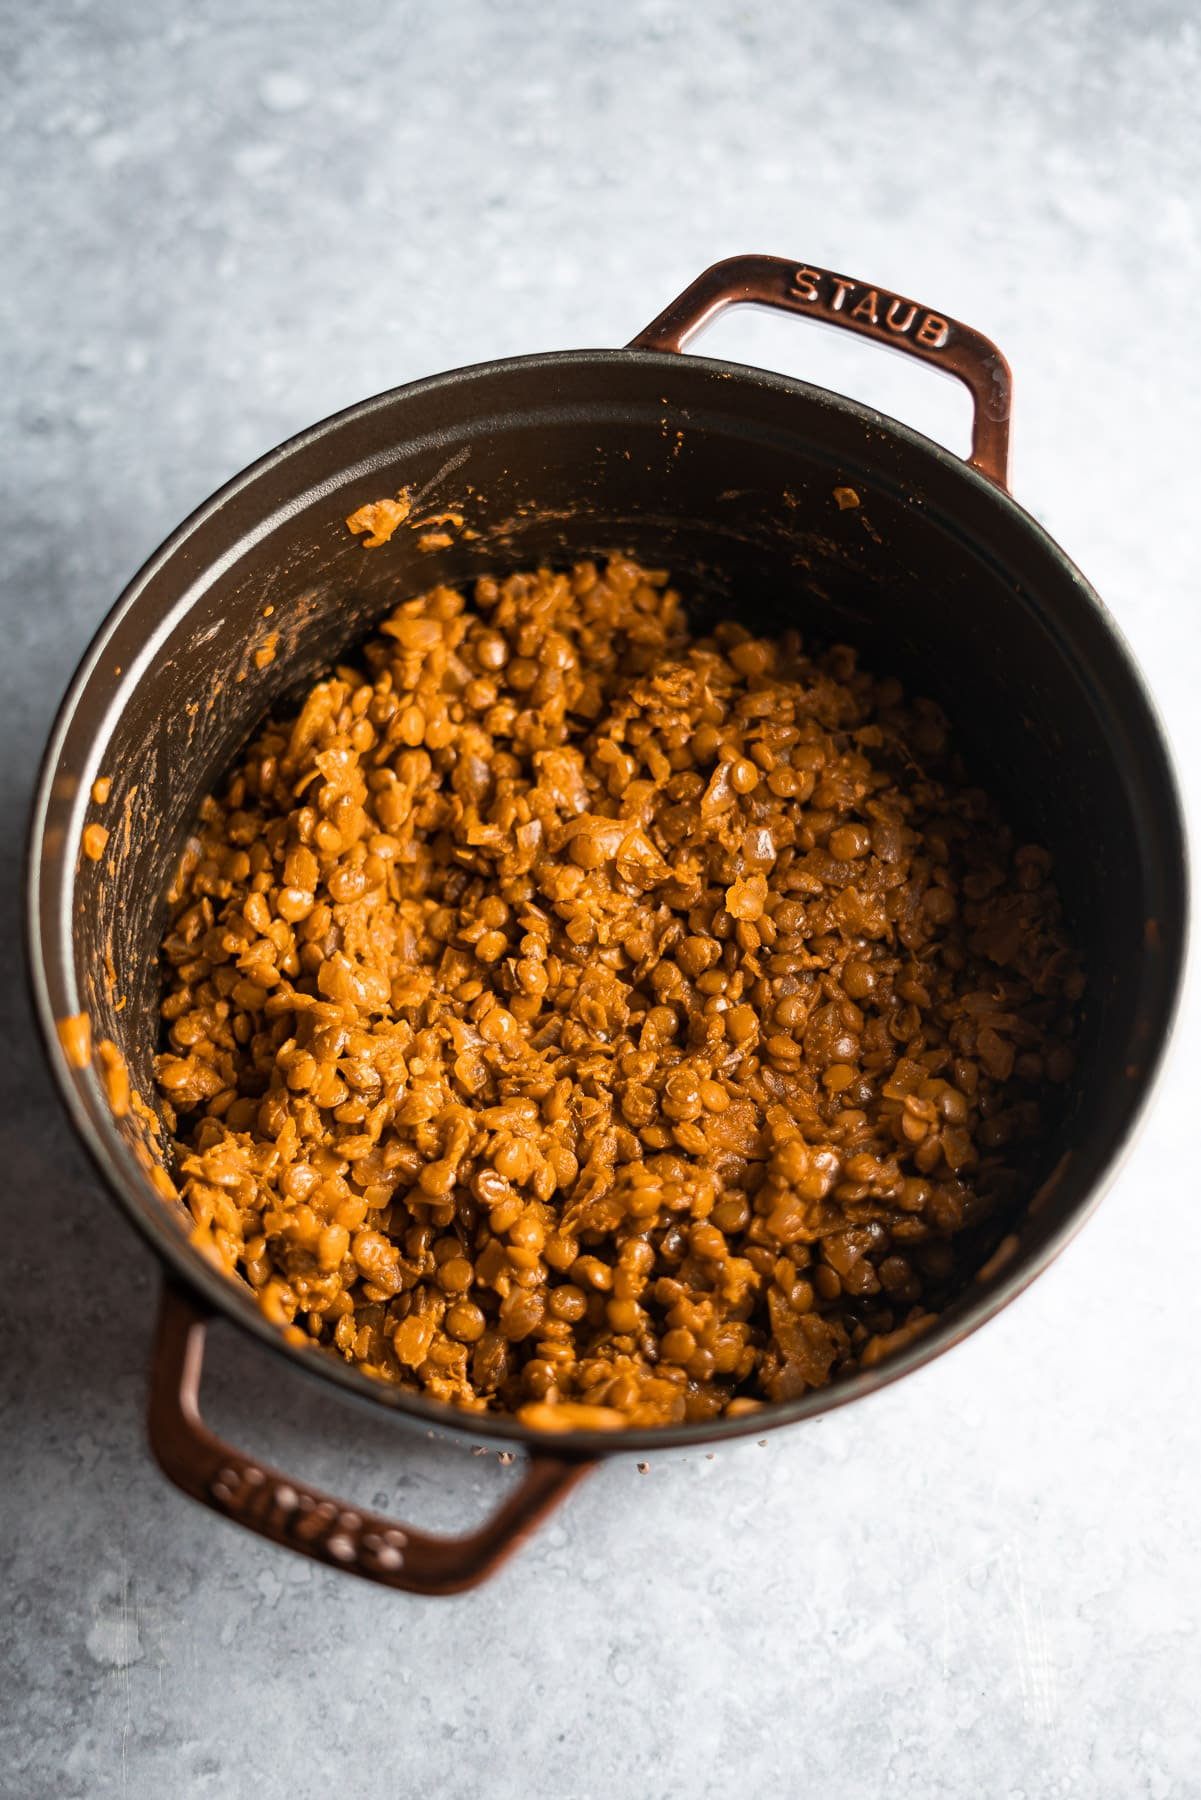 cooked brown lentils in a staub cocotte